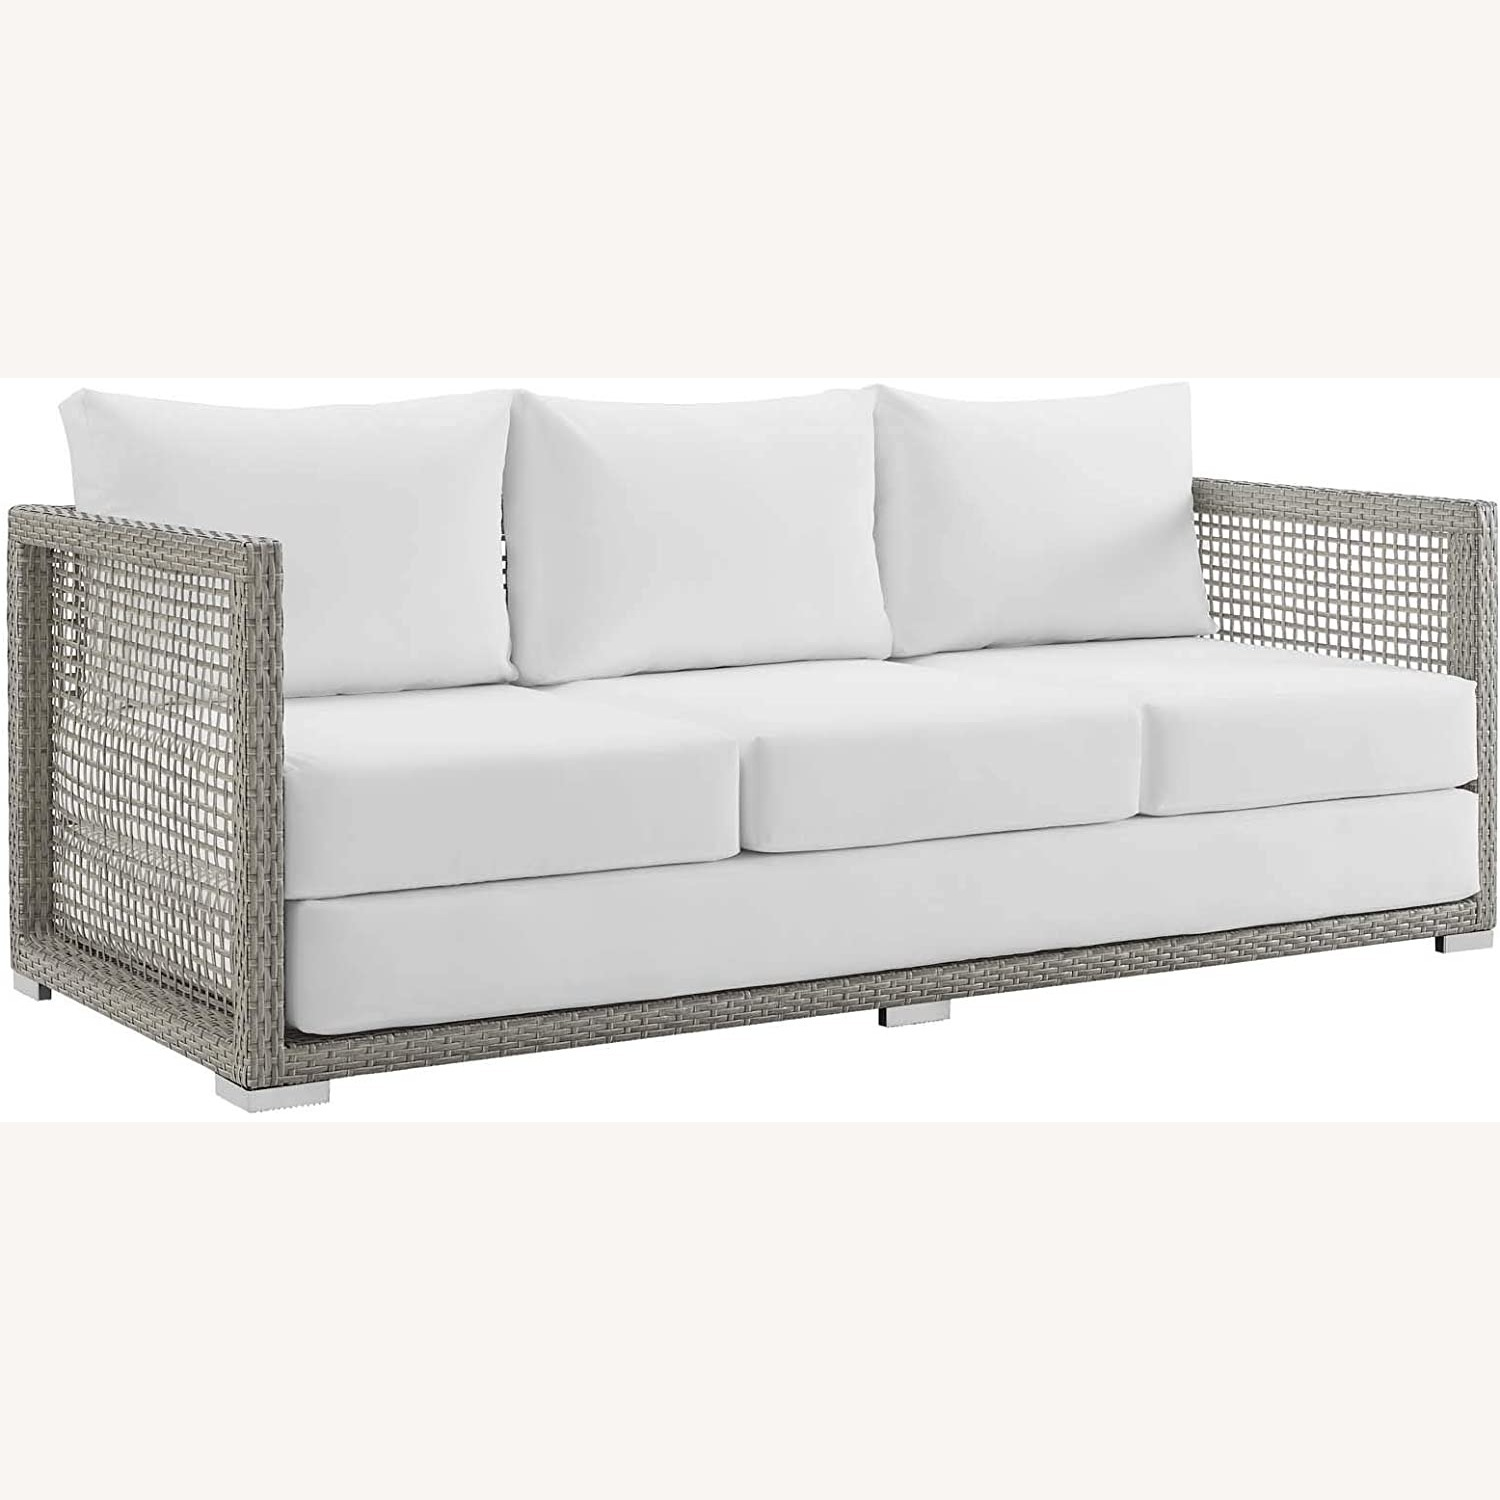 Outdoor Sofa In Gray Rattan Weave Finish - image-0